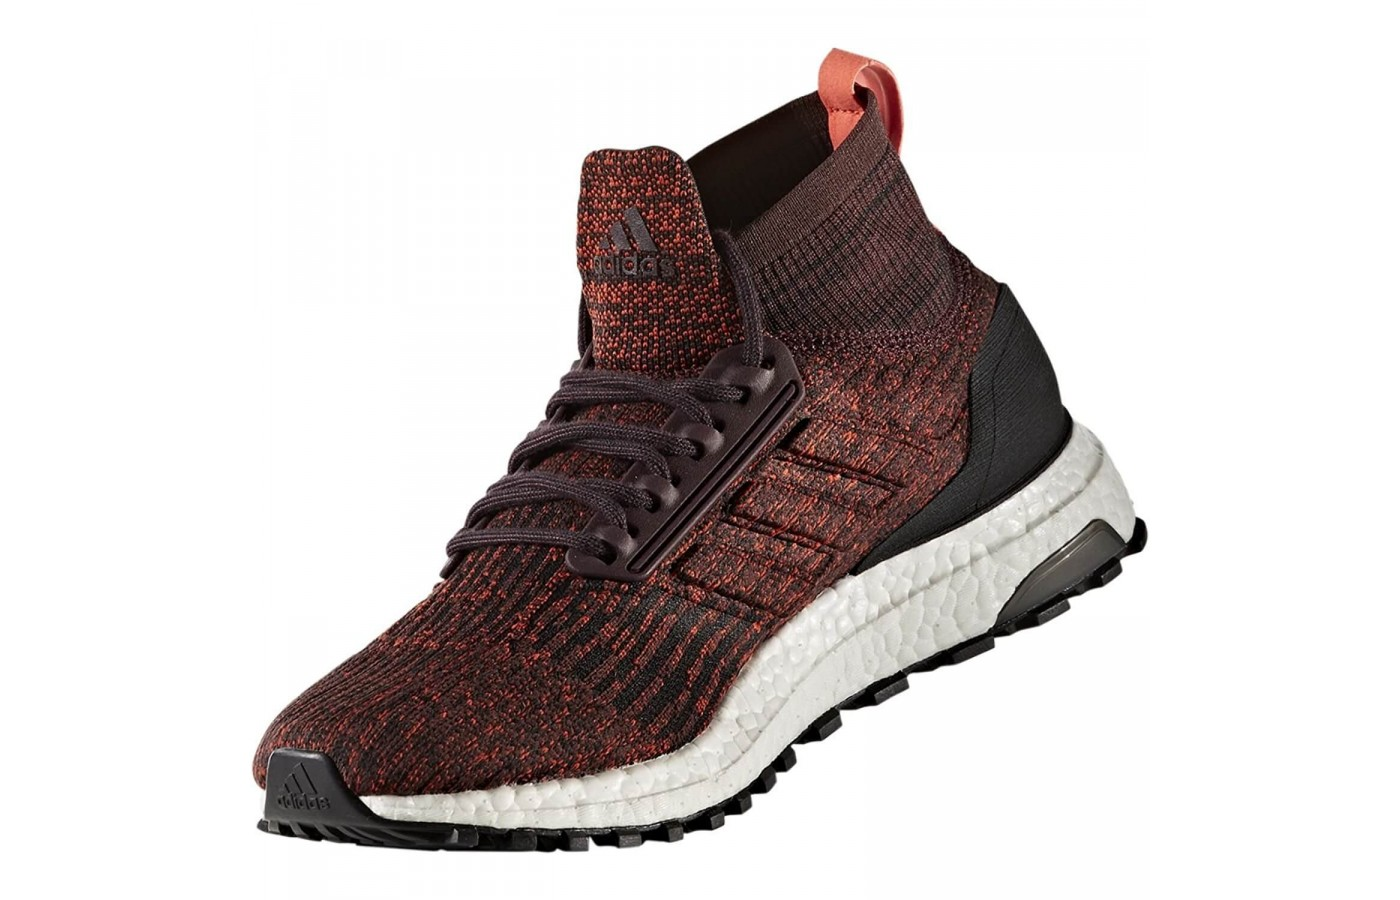 989cd4bdb40d8 Adidas Ultraboost All Terrain - Buy or Not in May 2019